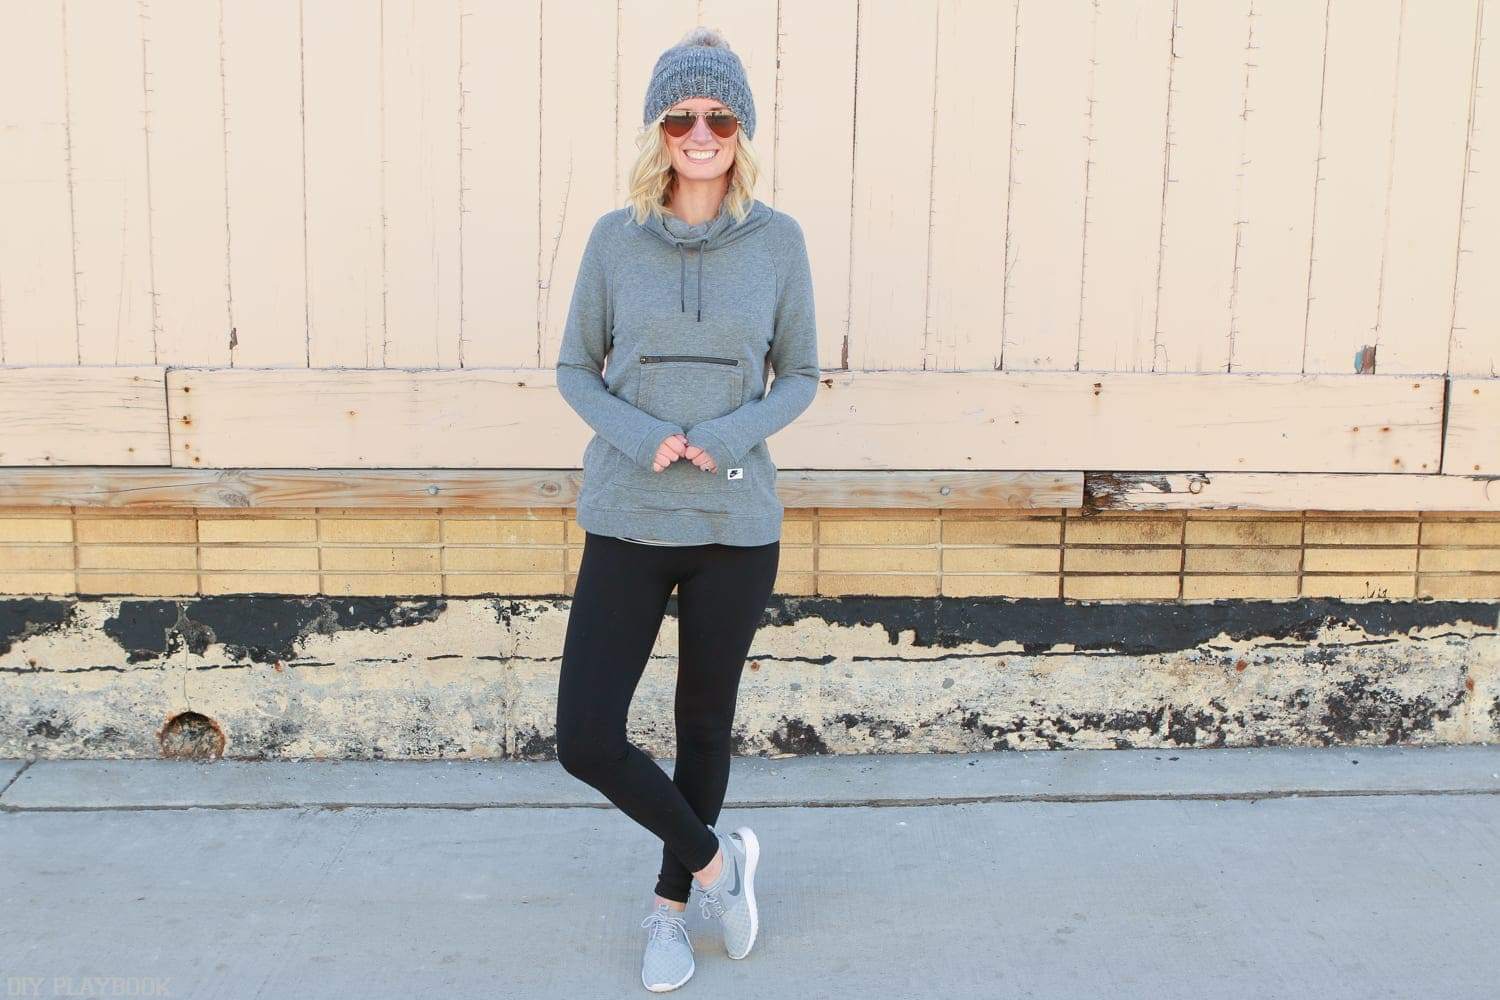 Bridget looks great in her Athleisure Pieces to Wear Anytime, inlcuding her new grey cowl neck sweatshirt and black leggings with side zippers.